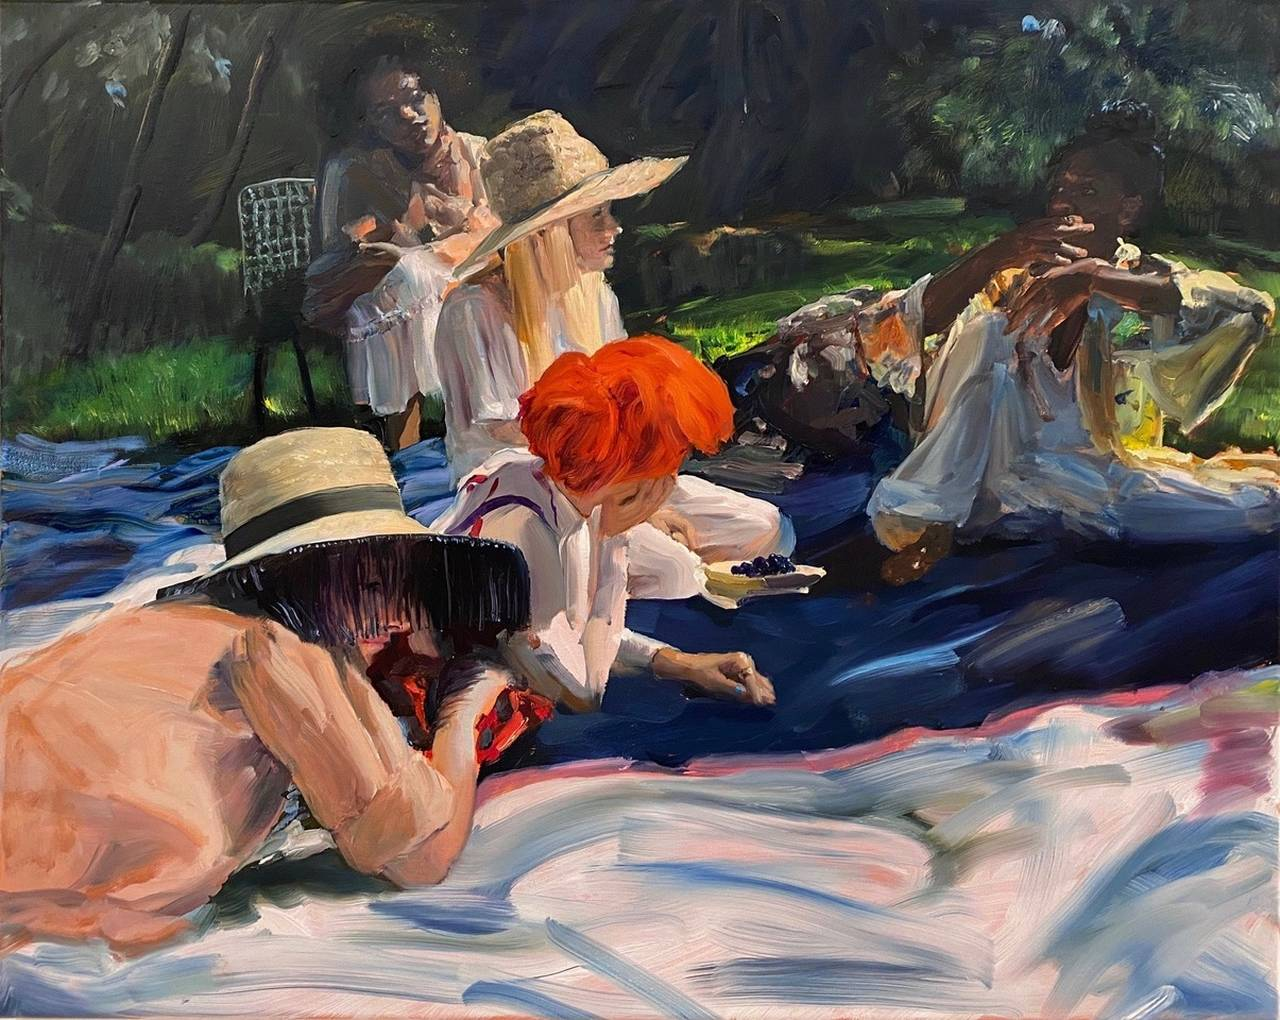 Jenna Gribbon, Lunch on the grass, a recurring dream, 2020, oil on linen, 24 x 30in. Courtesy of GNYP Gallery and the artist.